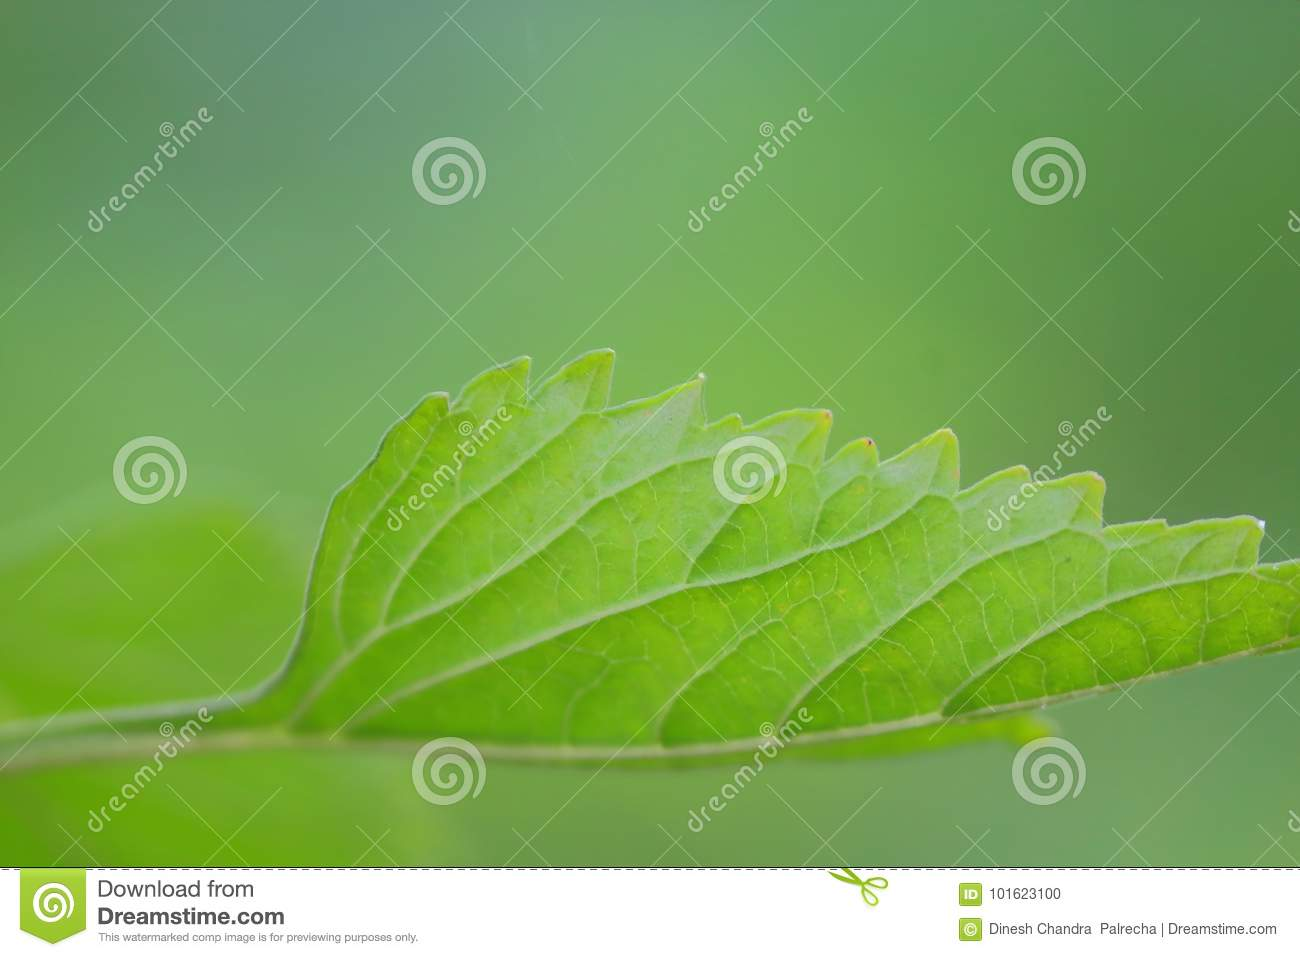 Texture in plant of green leaf, natural green background